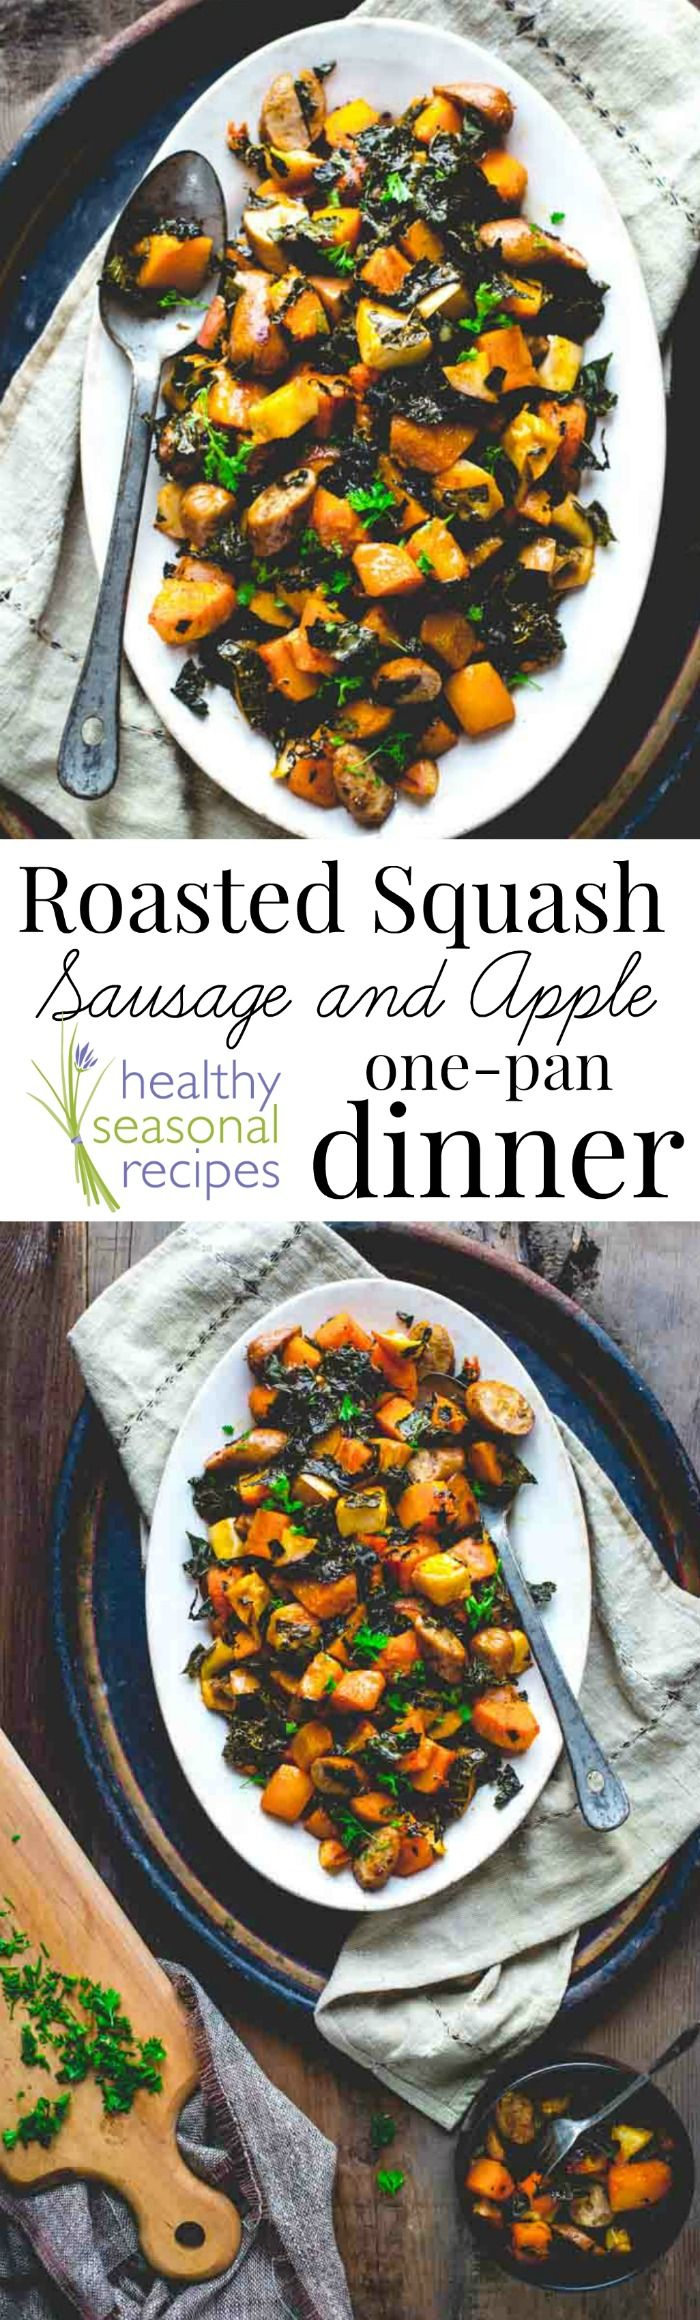 roasted squash, sausage and apple one pan dinner